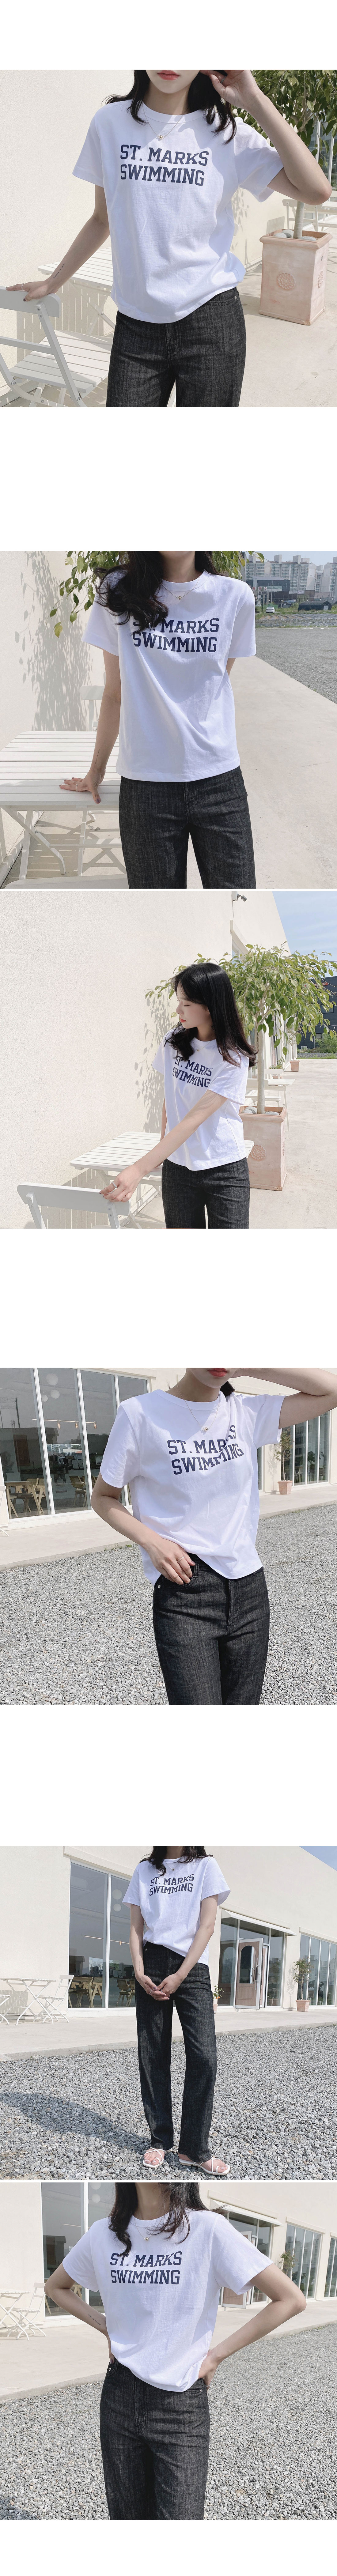 Swimming Lettering Cotton T-shirt - Ivory, Light Gray Same Day Shipping